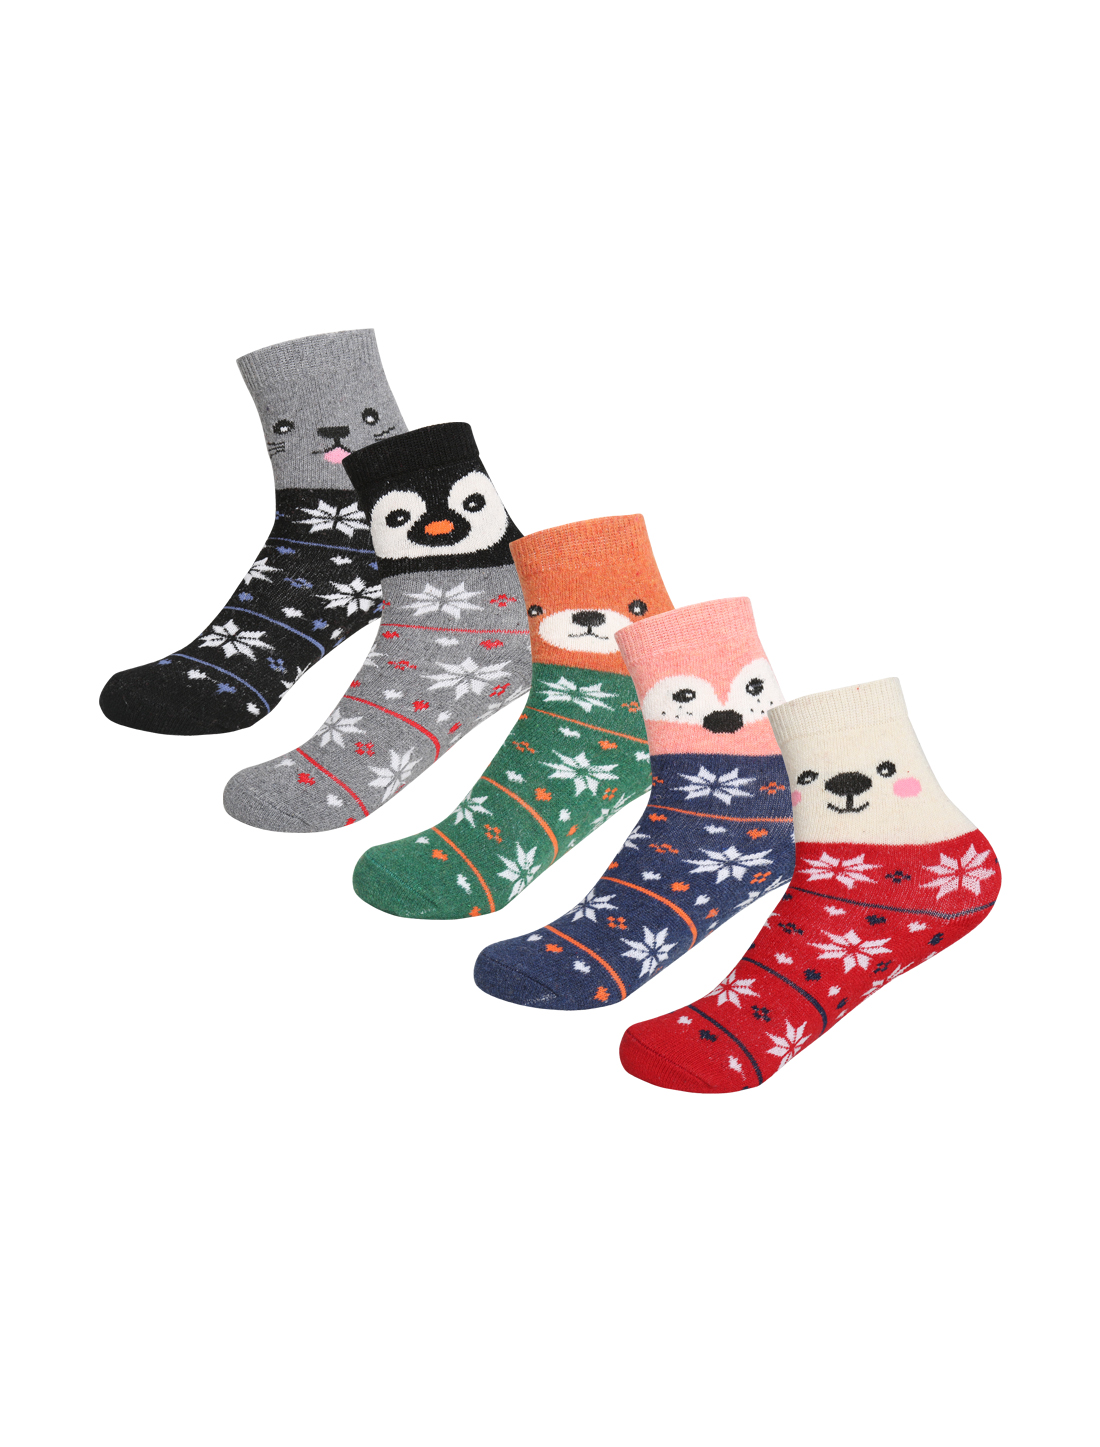 Women 5 Pack Animal Novelty Pattern Thermal Crew Socks 7-9 Assorted-3